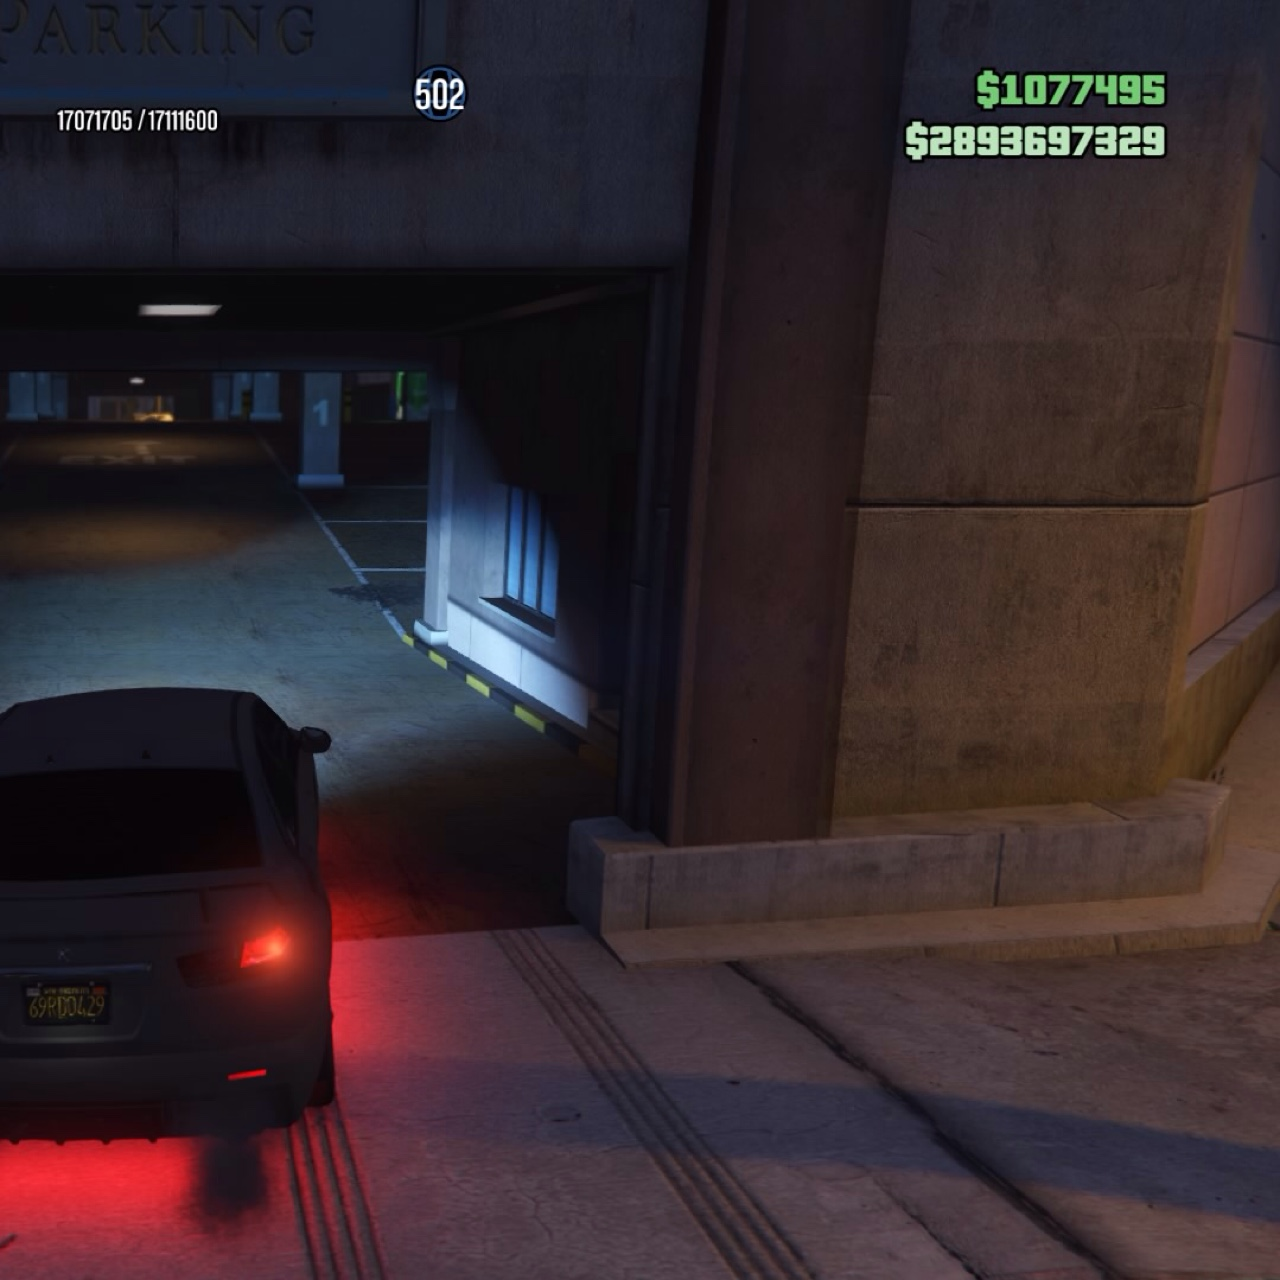 Gta 5 modded account  I have a pre made ps4 account